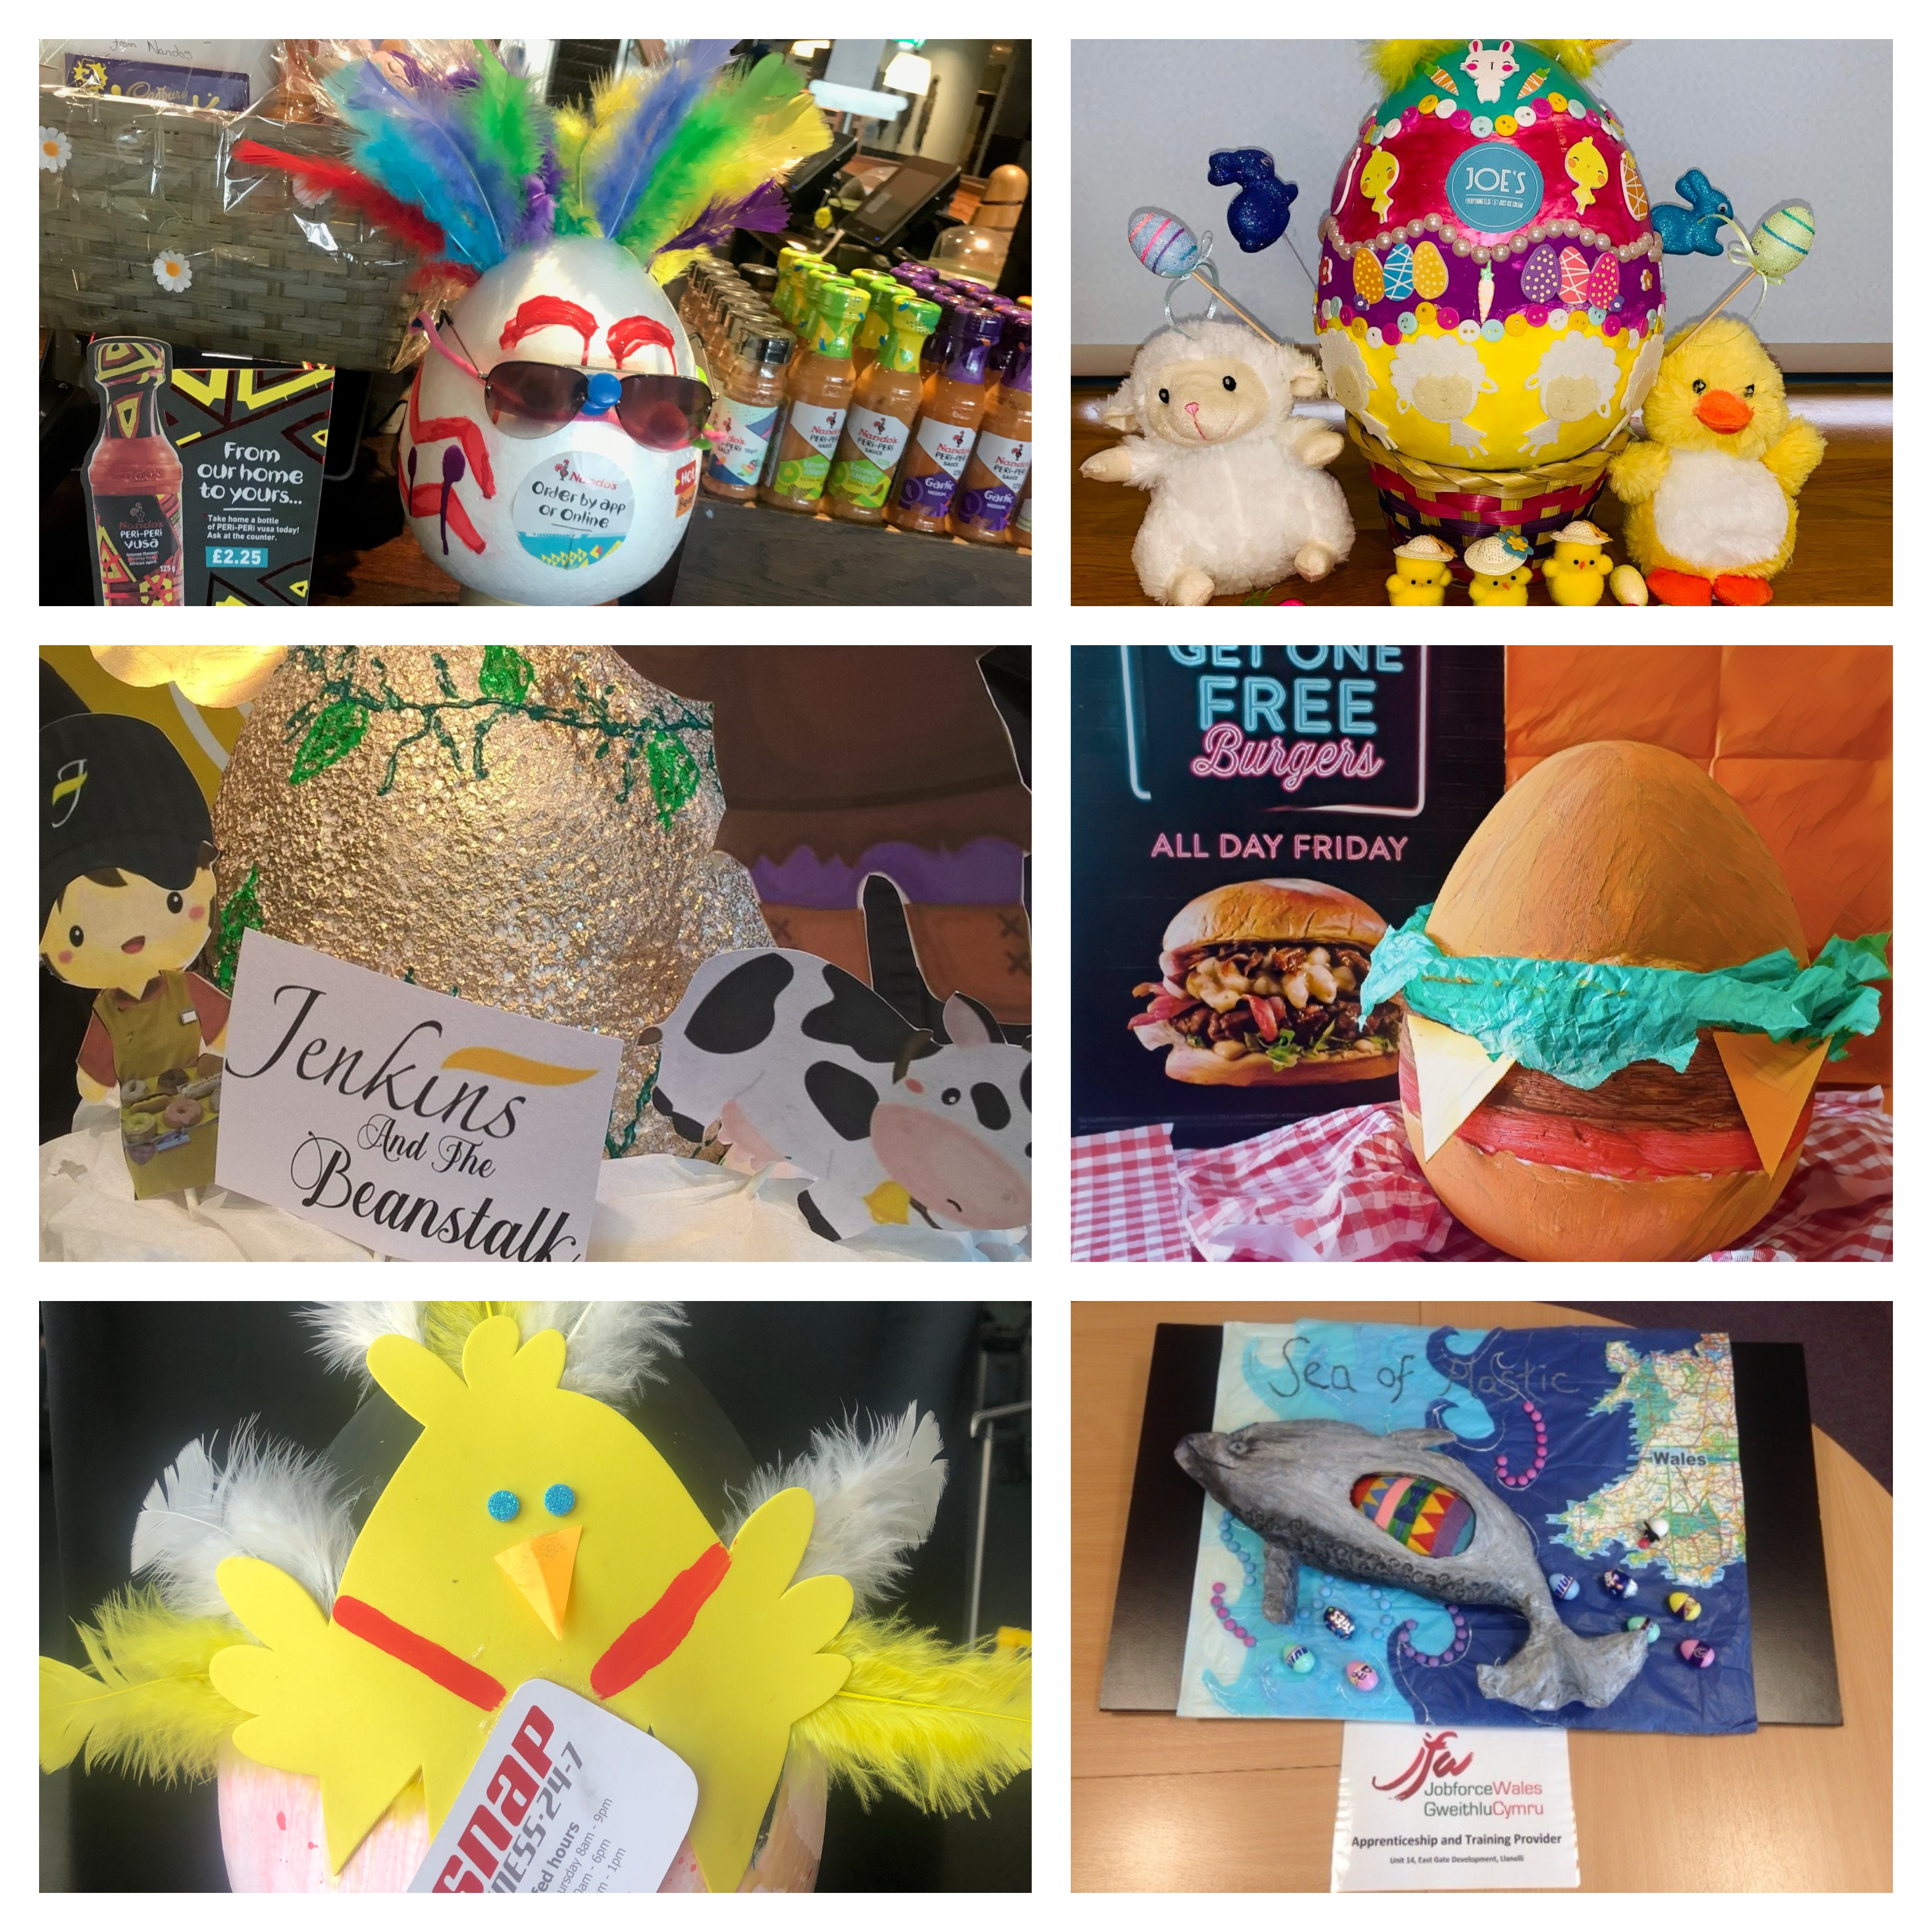 Vote for your favourite East Gate Easter Egg